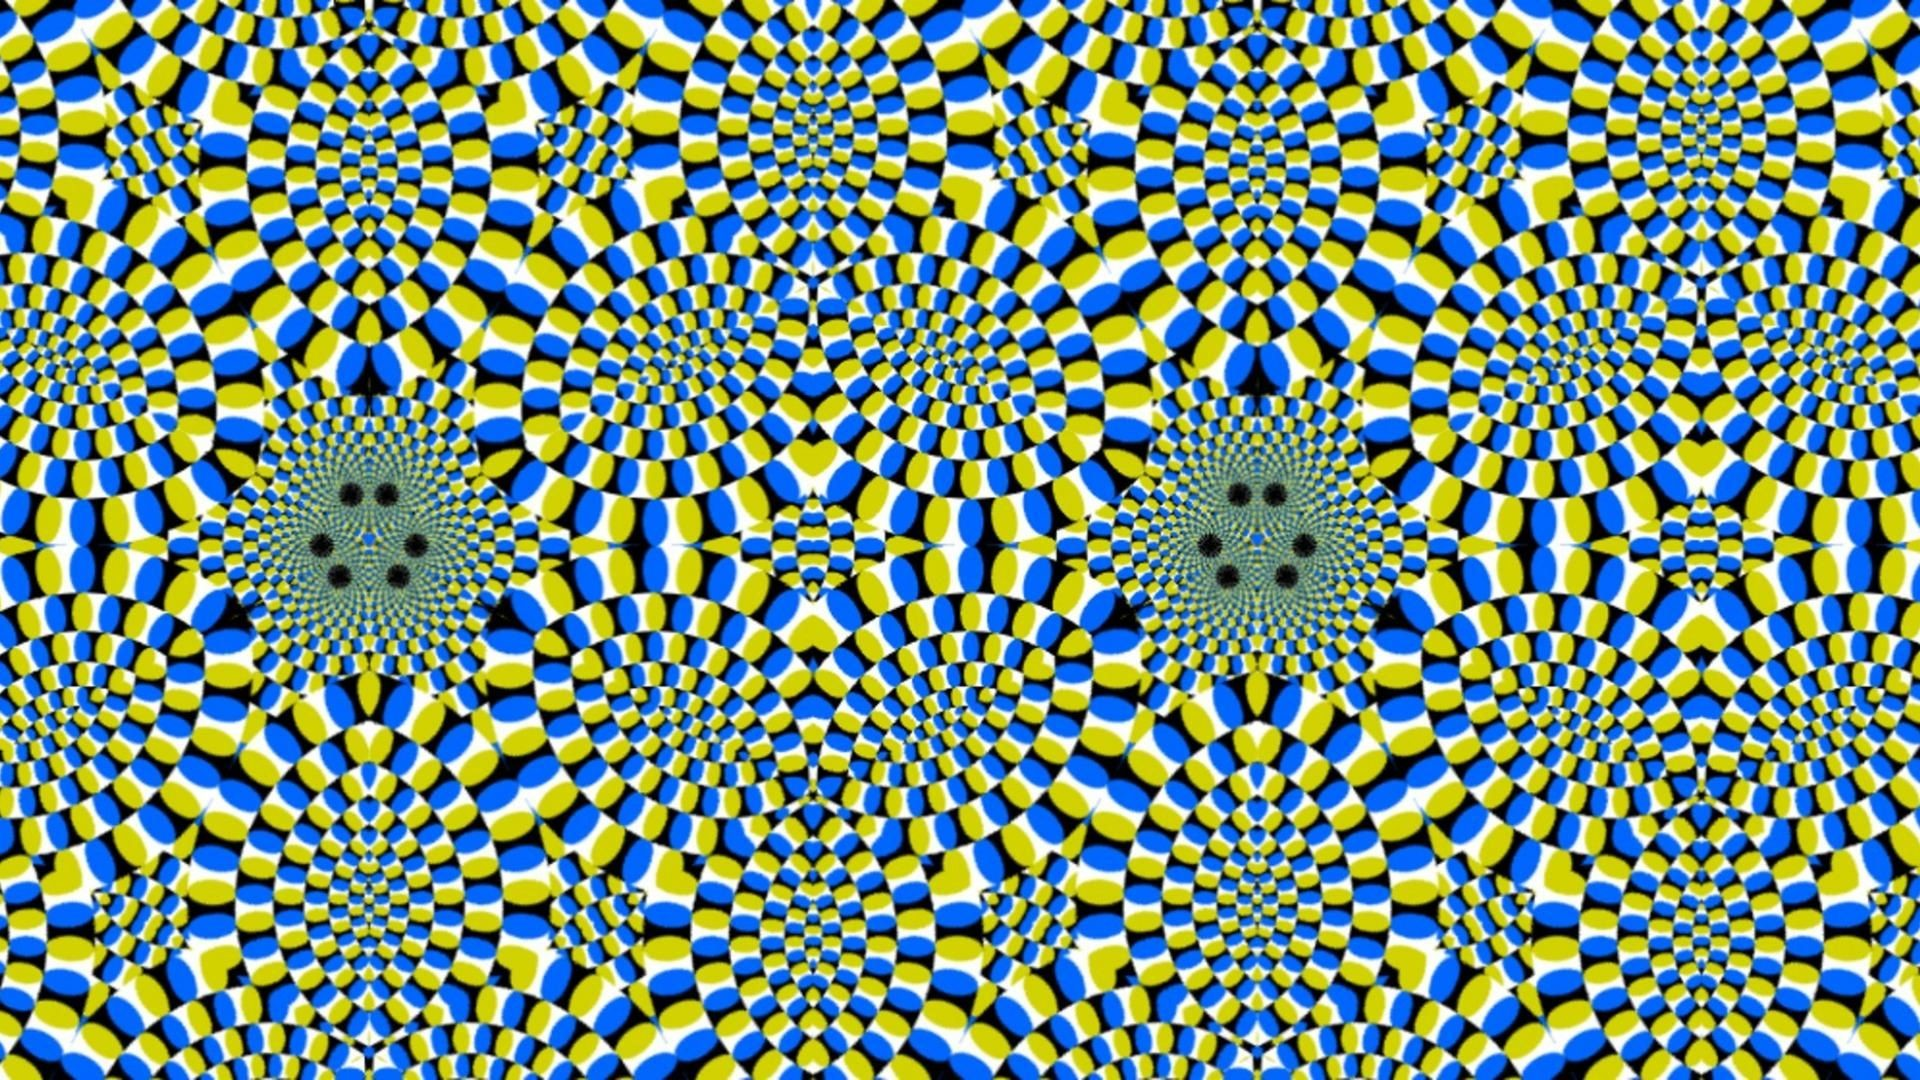 Res: 1920x1080, Free Optical Illusion Wallpaper Desktop